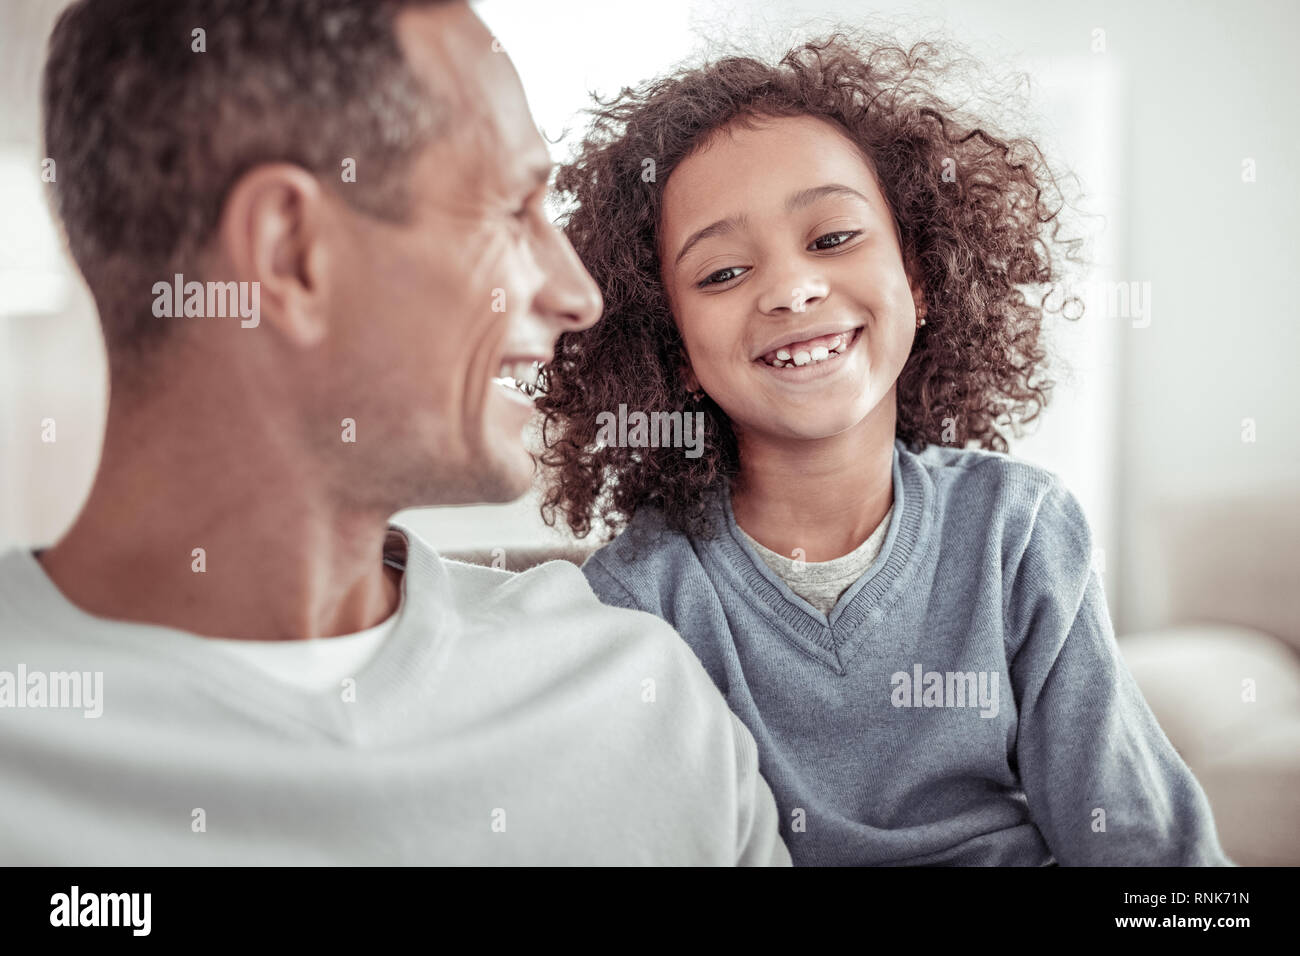 Joyful small girl spending good time with her father - Stock Image